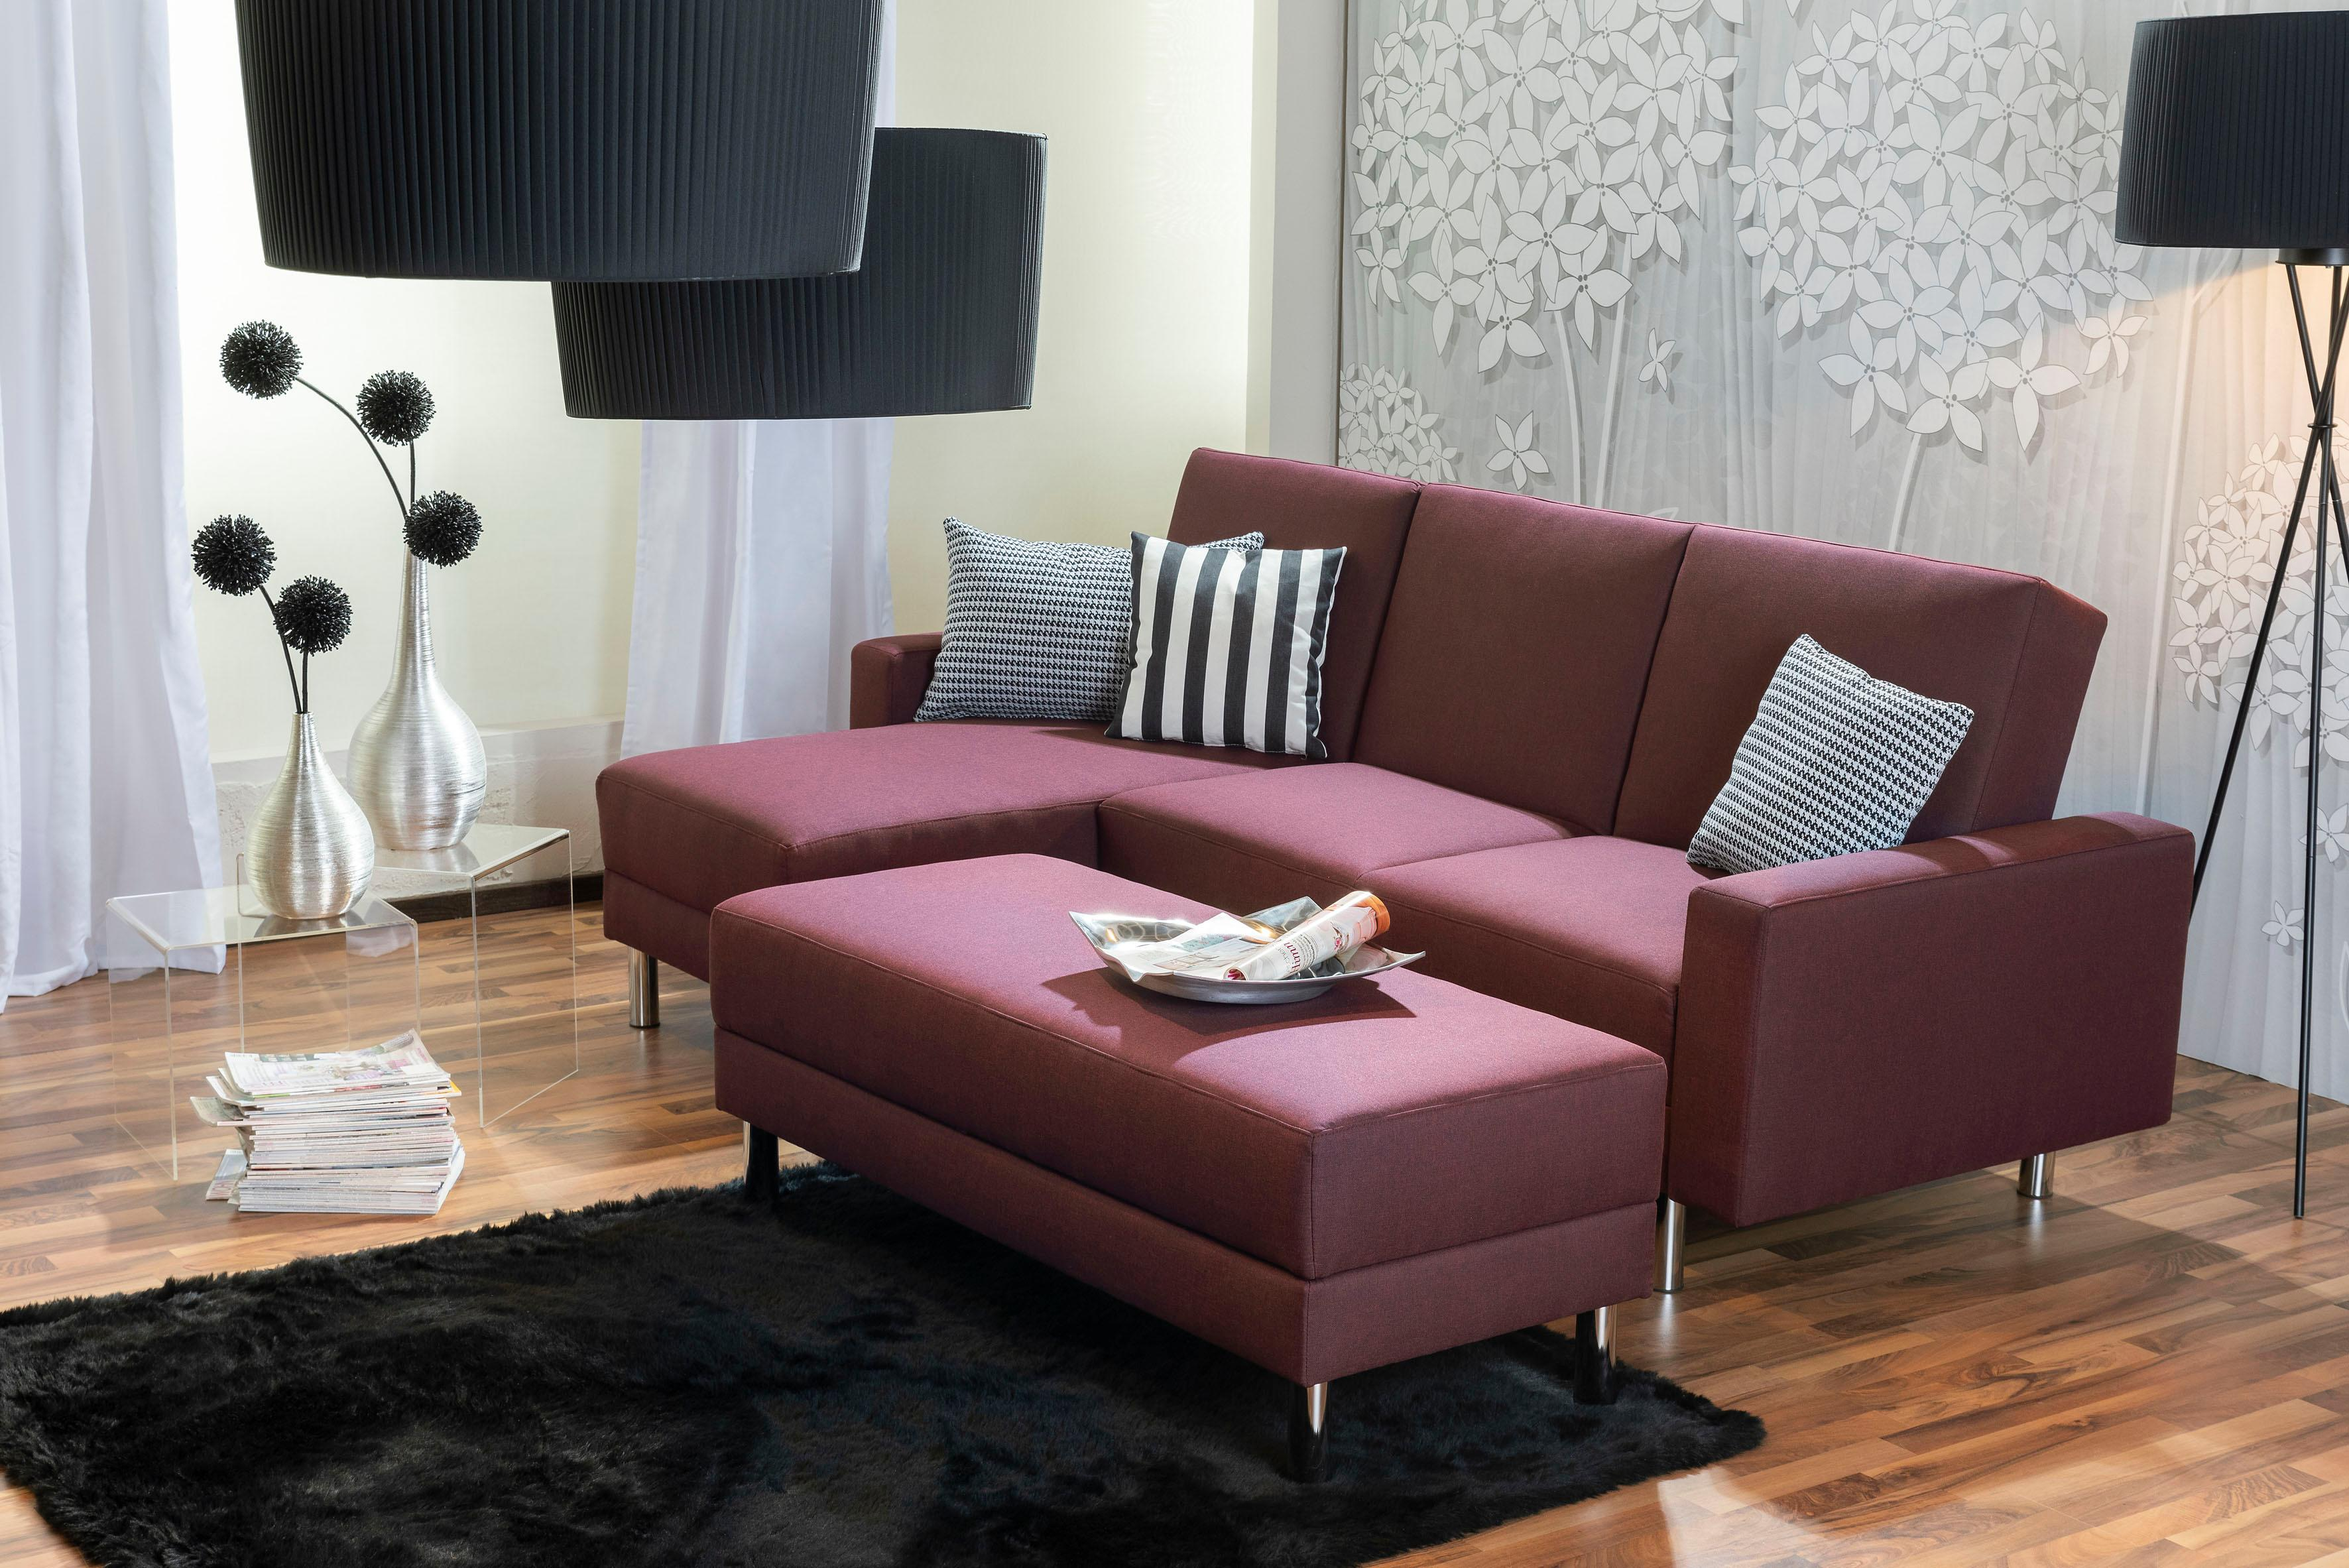 Max Winzer Schlafsofa Just Fresh